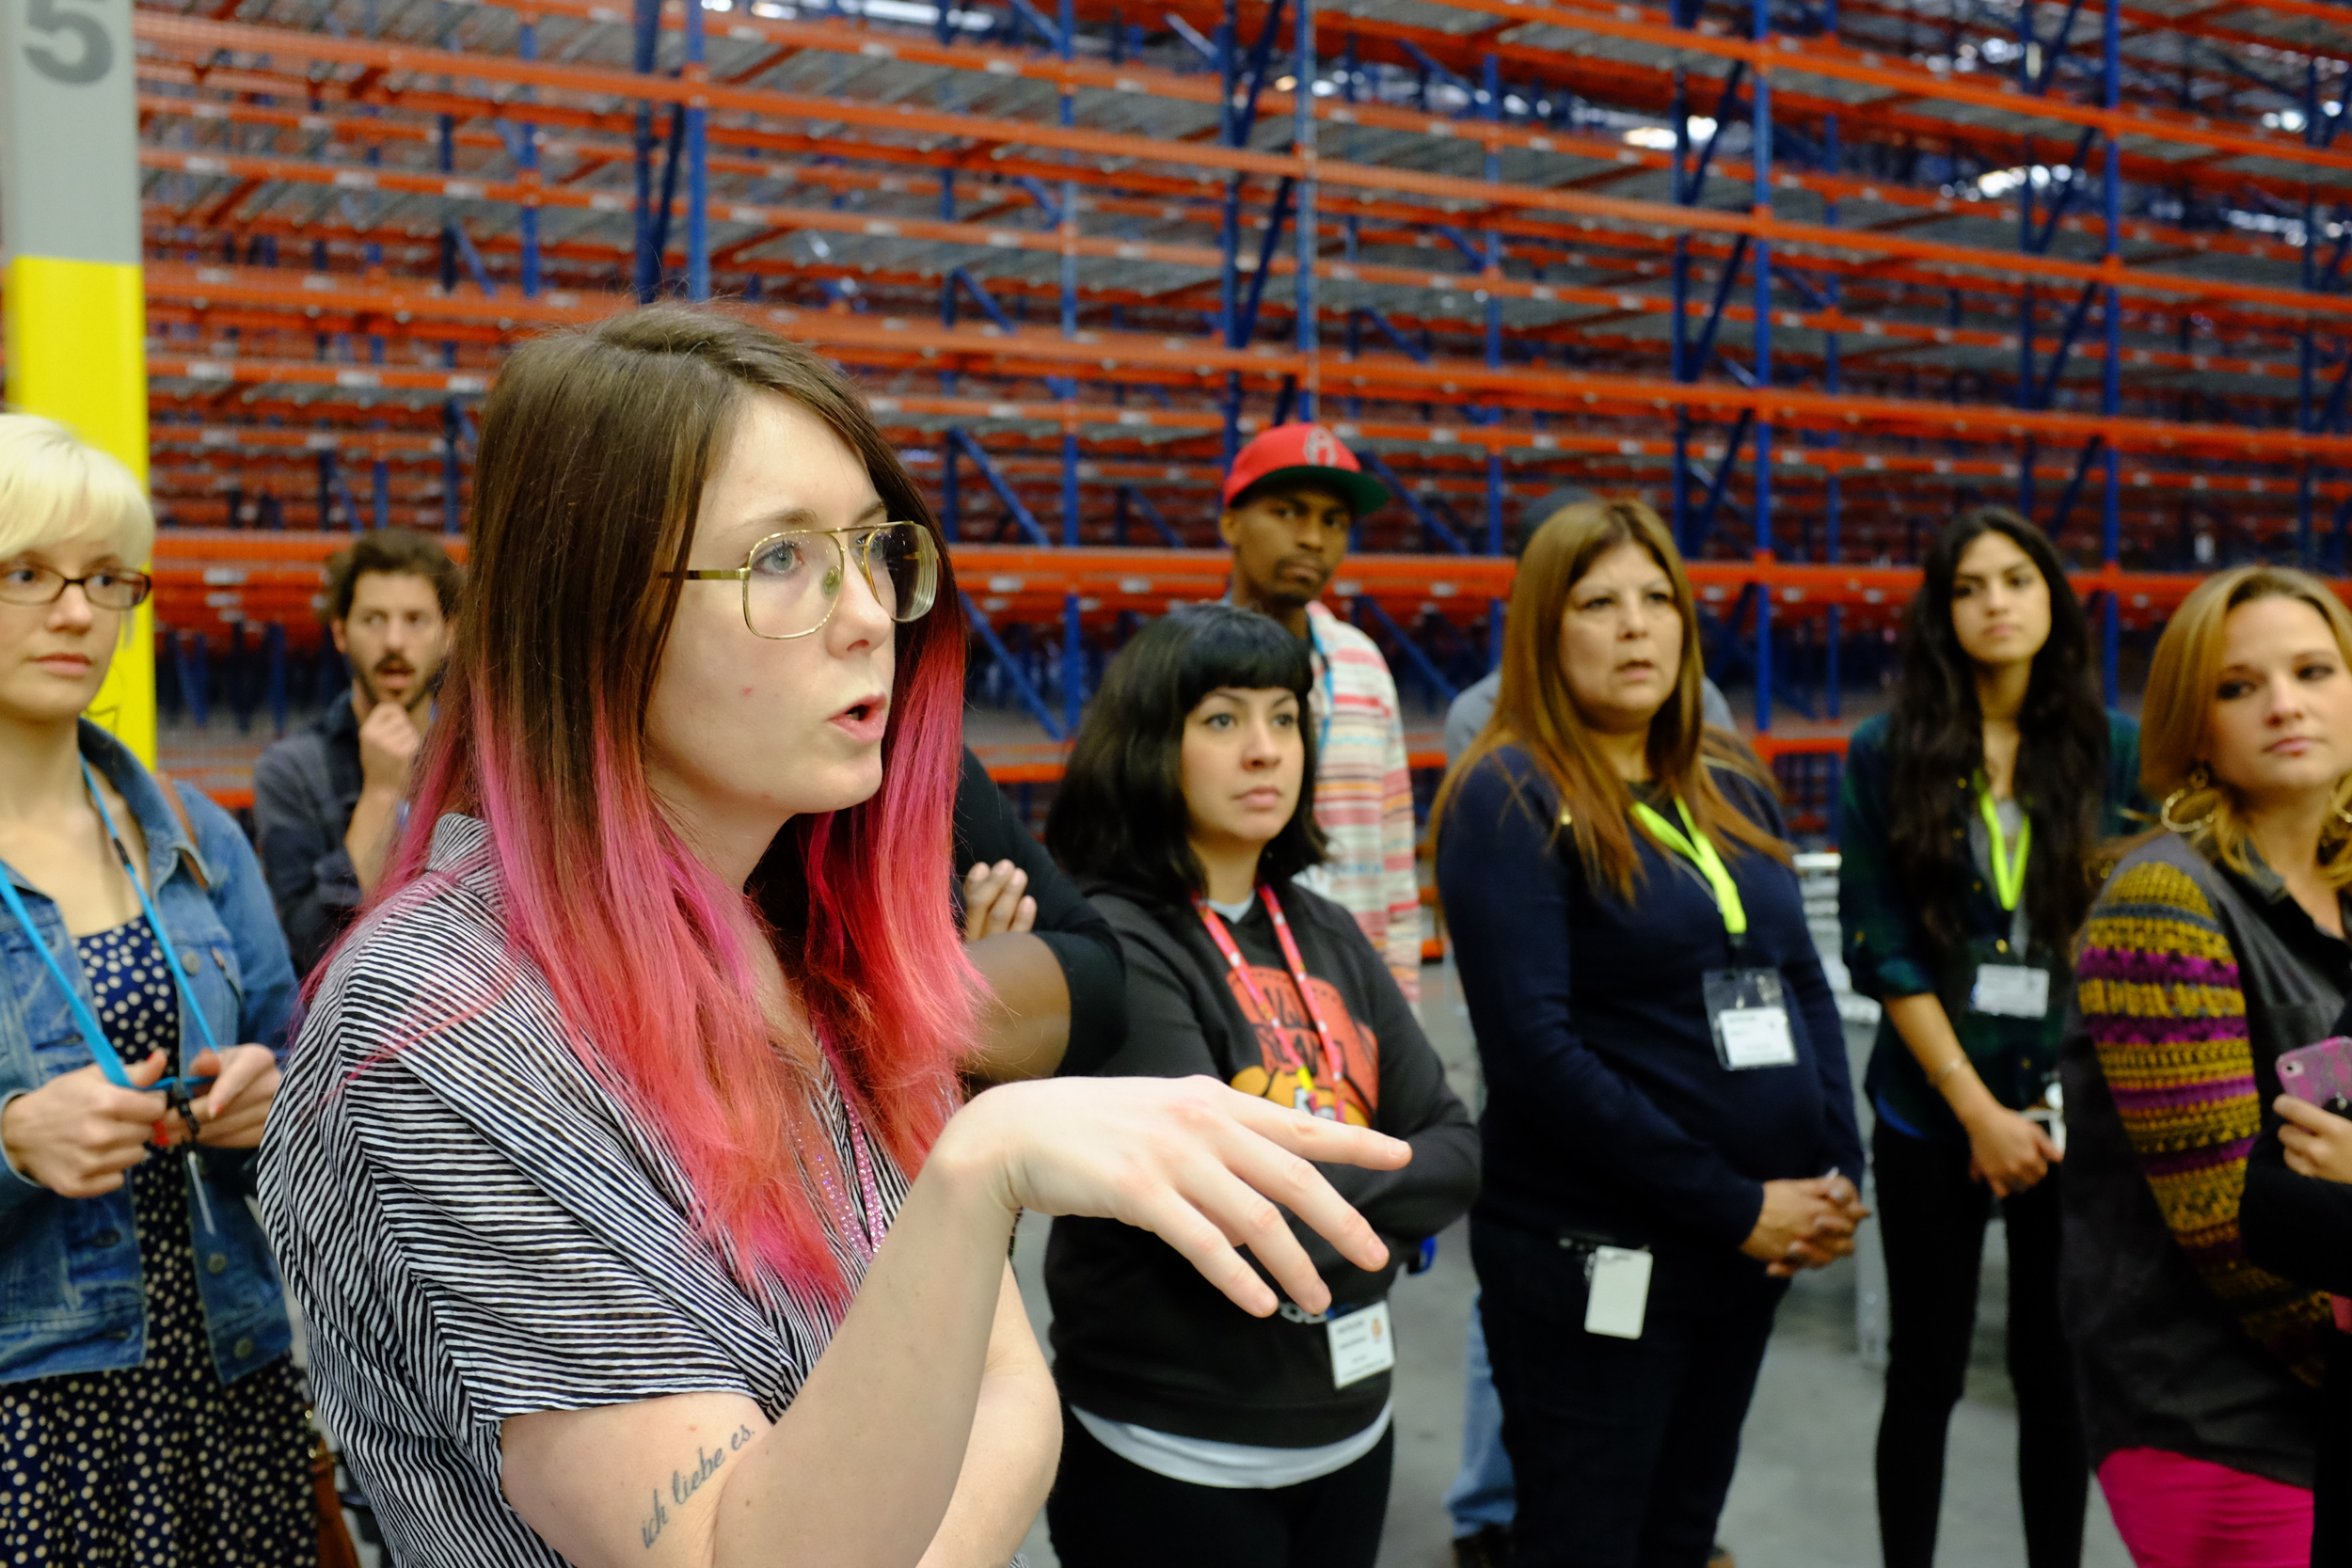 Lindsay asks a question during the fulfillment center tour.